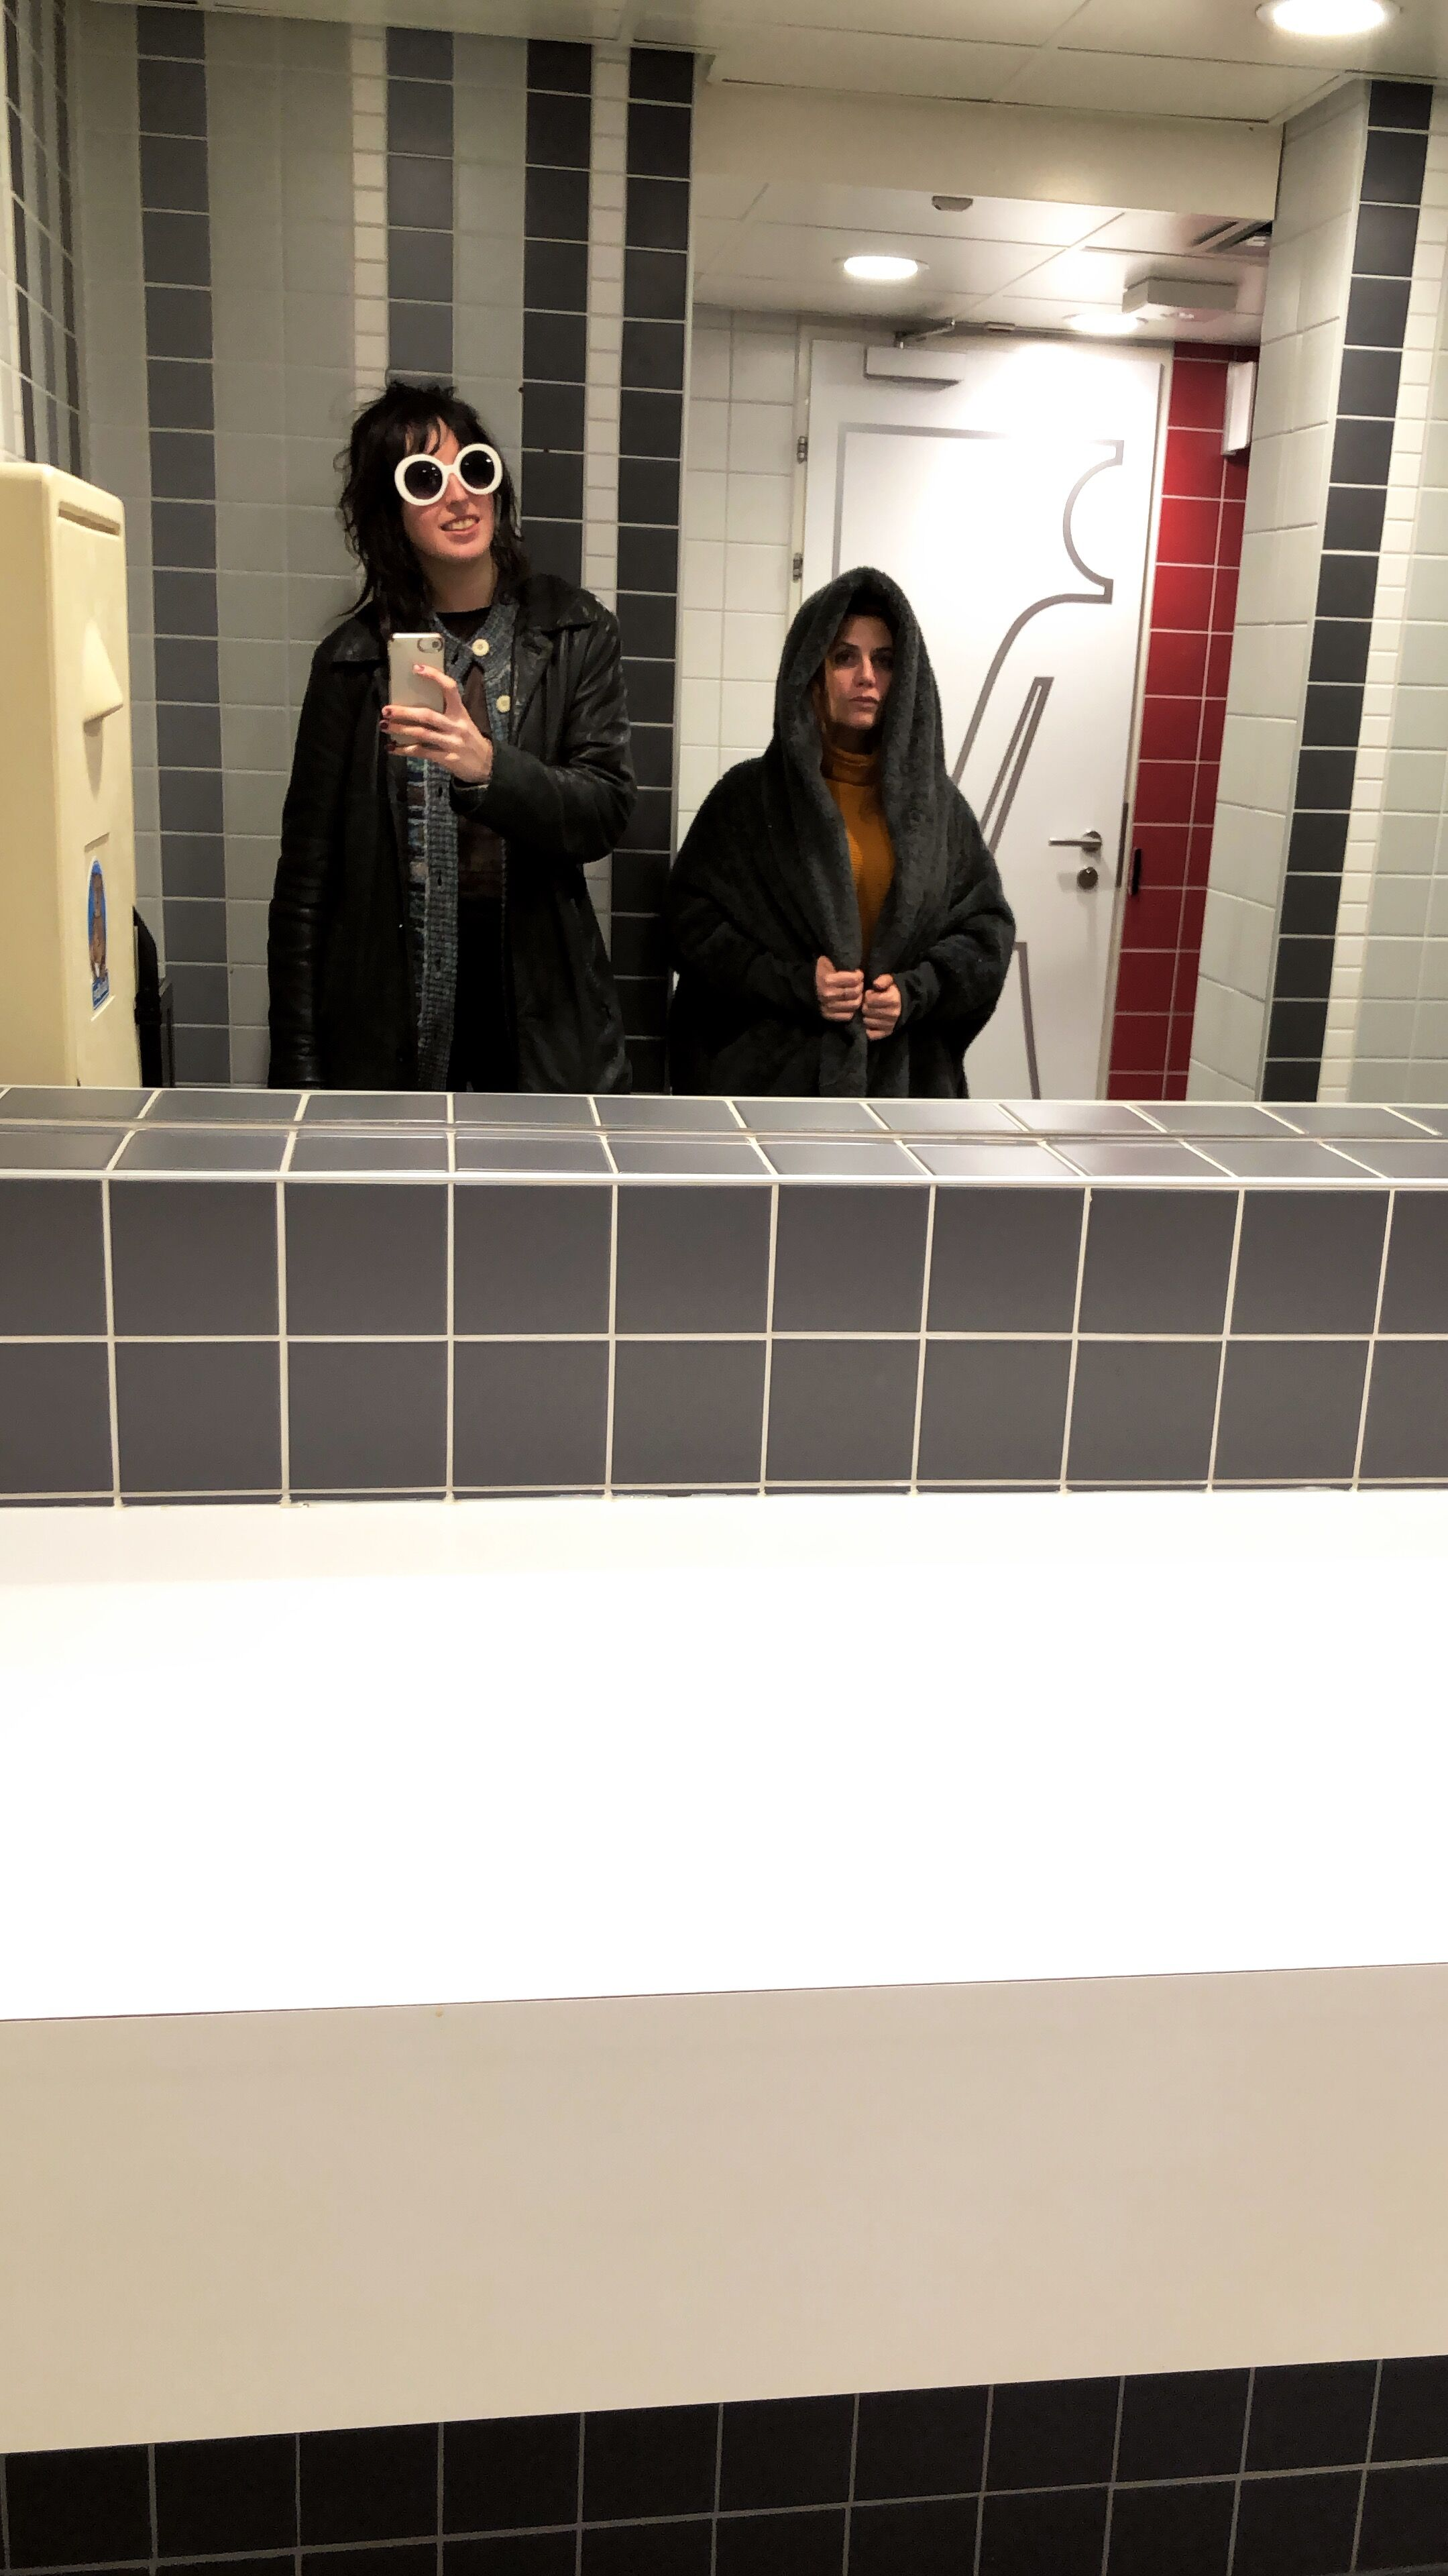 Sole Bathroom Selfie of the Tour